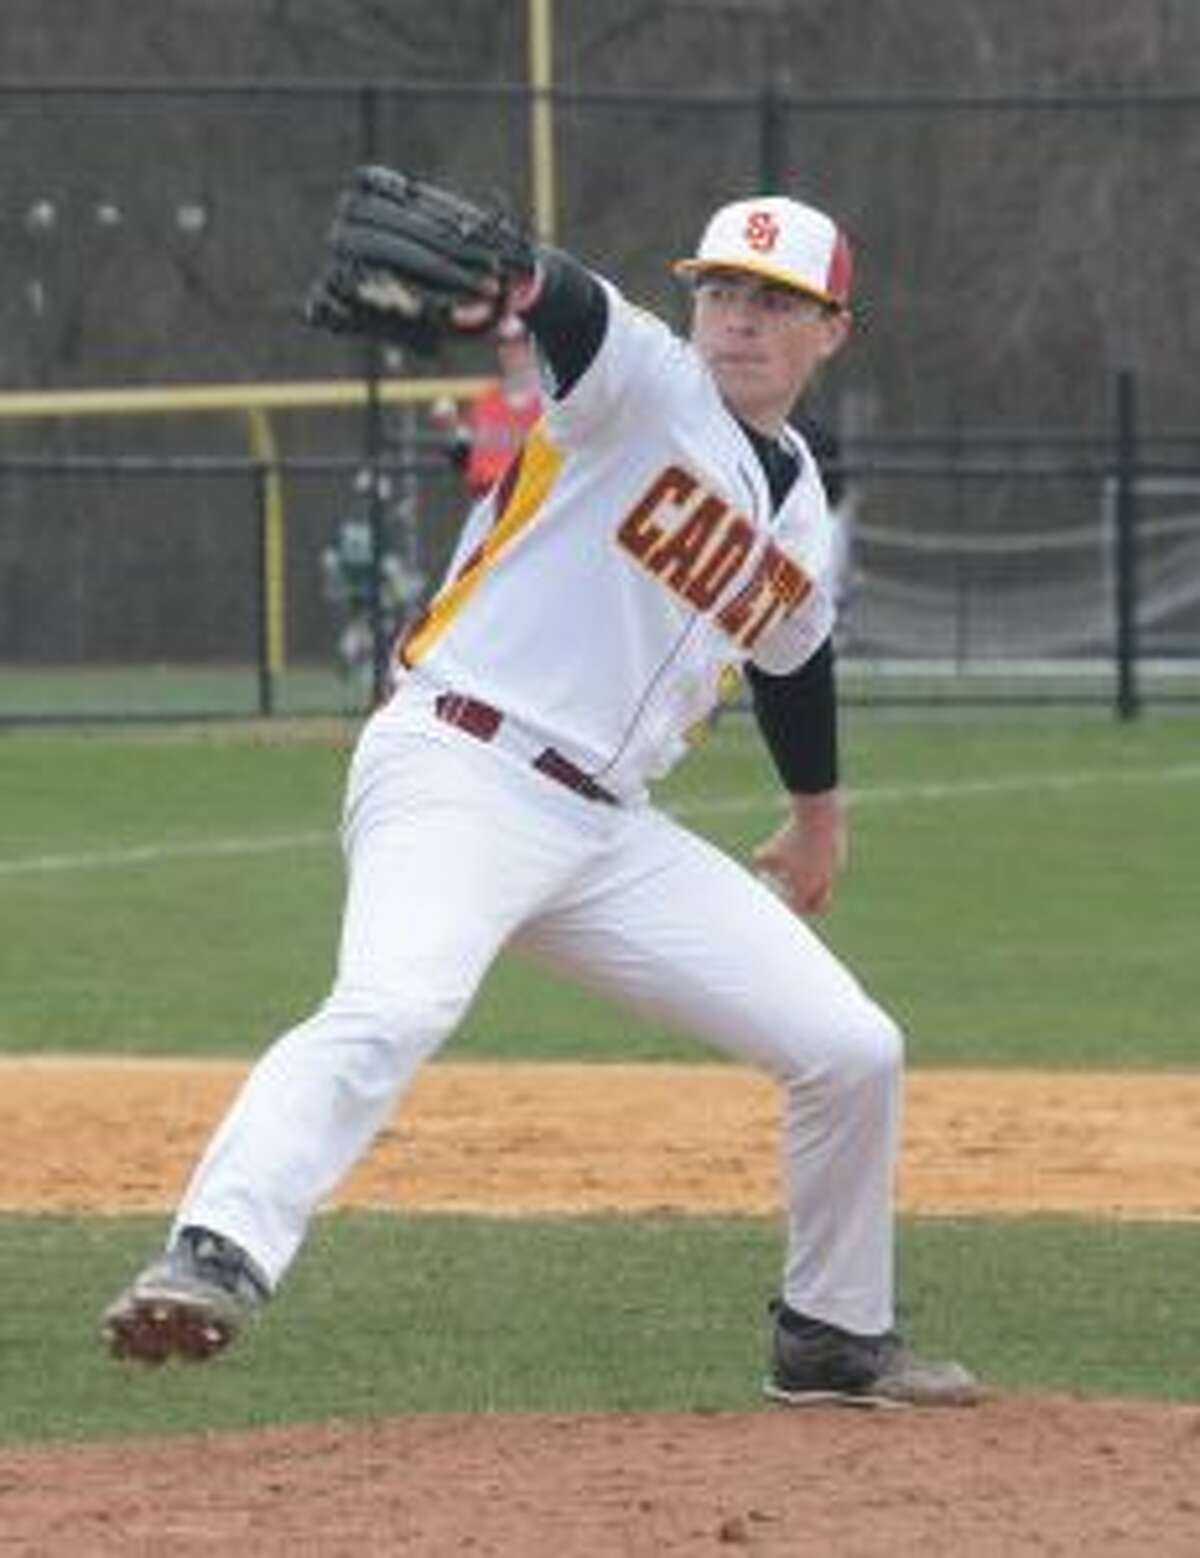 Al Paolozzi pitched St. Joseph to its sixth consecutive victory. - Andy Hutchison photos